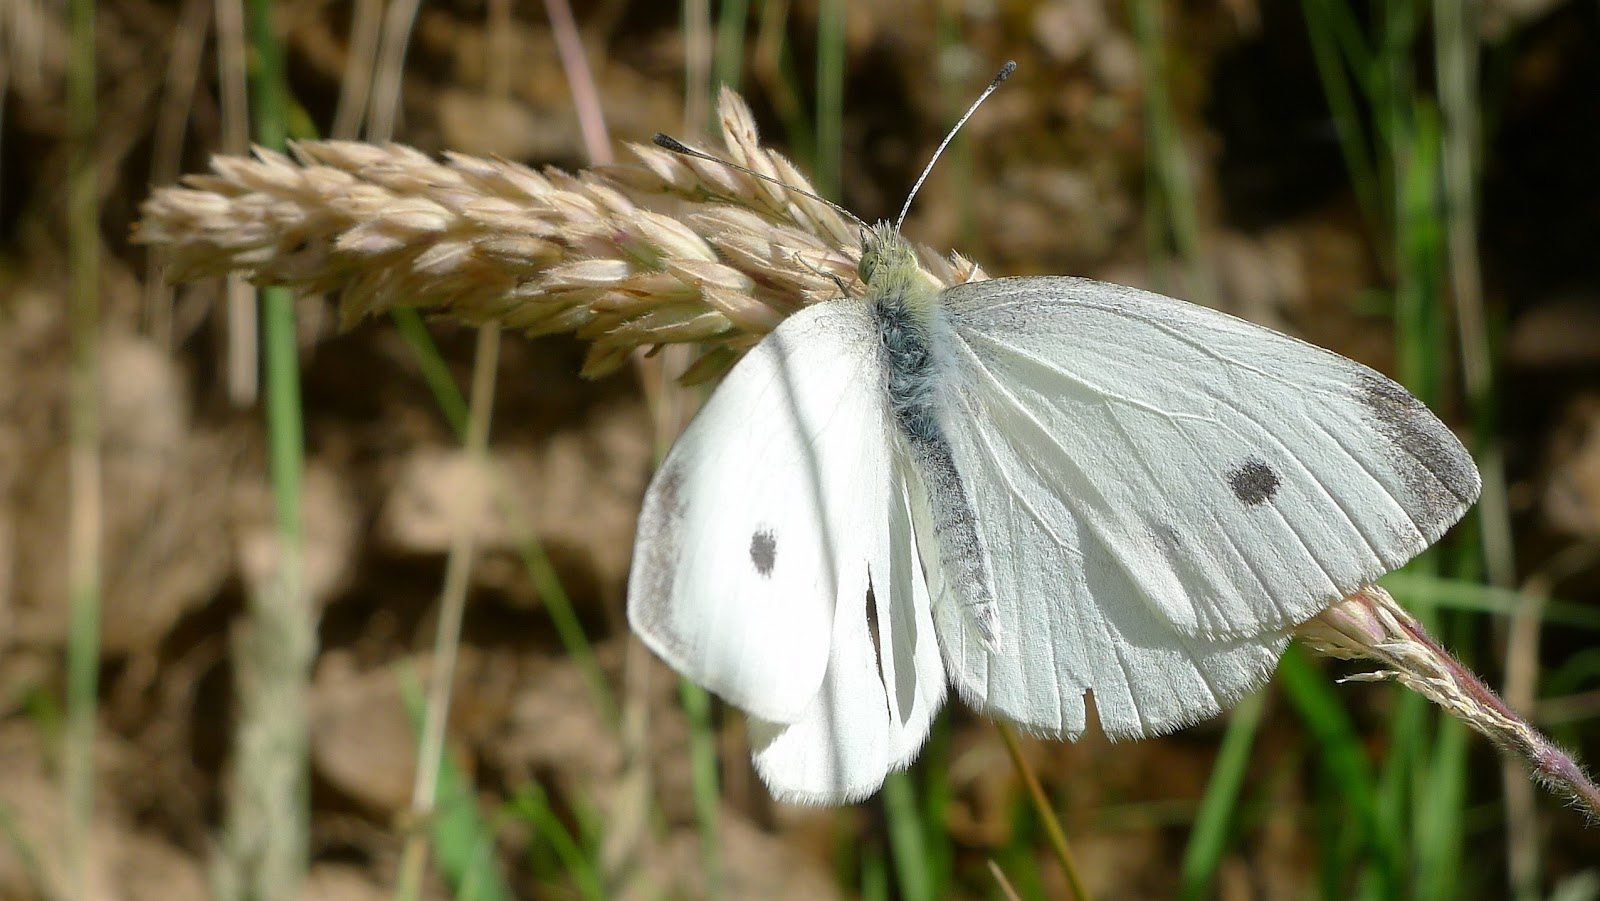 """A male cabbage white butterfly from Dargo, Australia. The destructive """"cabbage worm"""" is the caterpillar stage of this butterfly. Chickens and songbirds are helpful in controlling these pests, while some people resort to swatting at them with a tennis racket"""